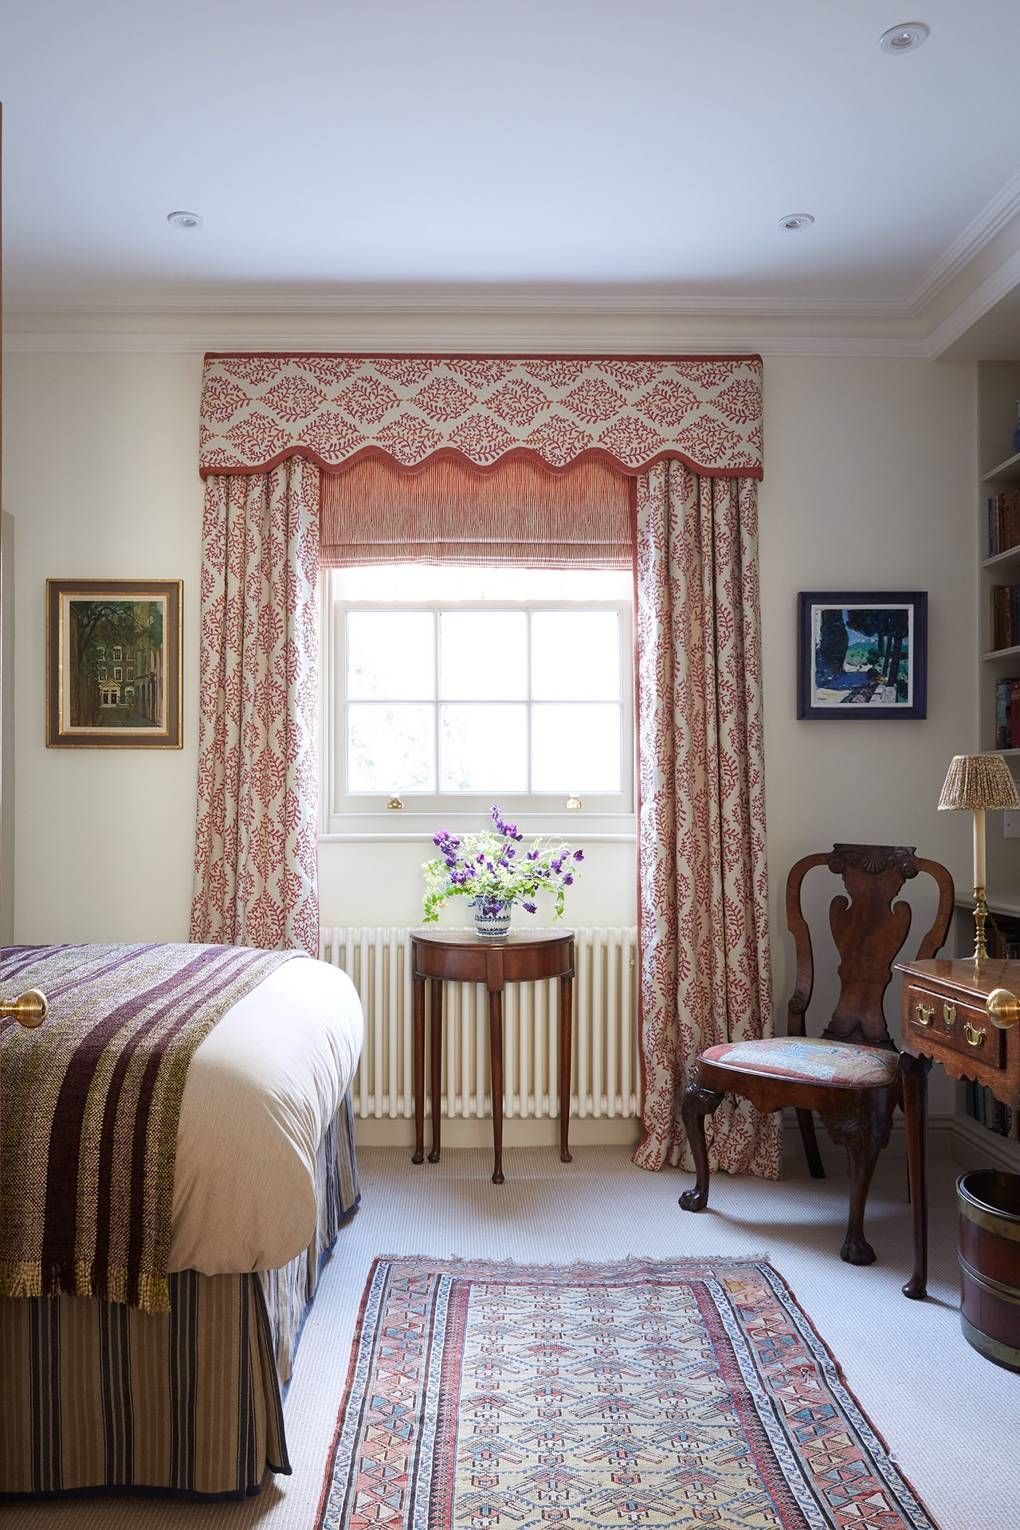 Window well decoration ideas   awesome window treatment ideas and curtain designs photos